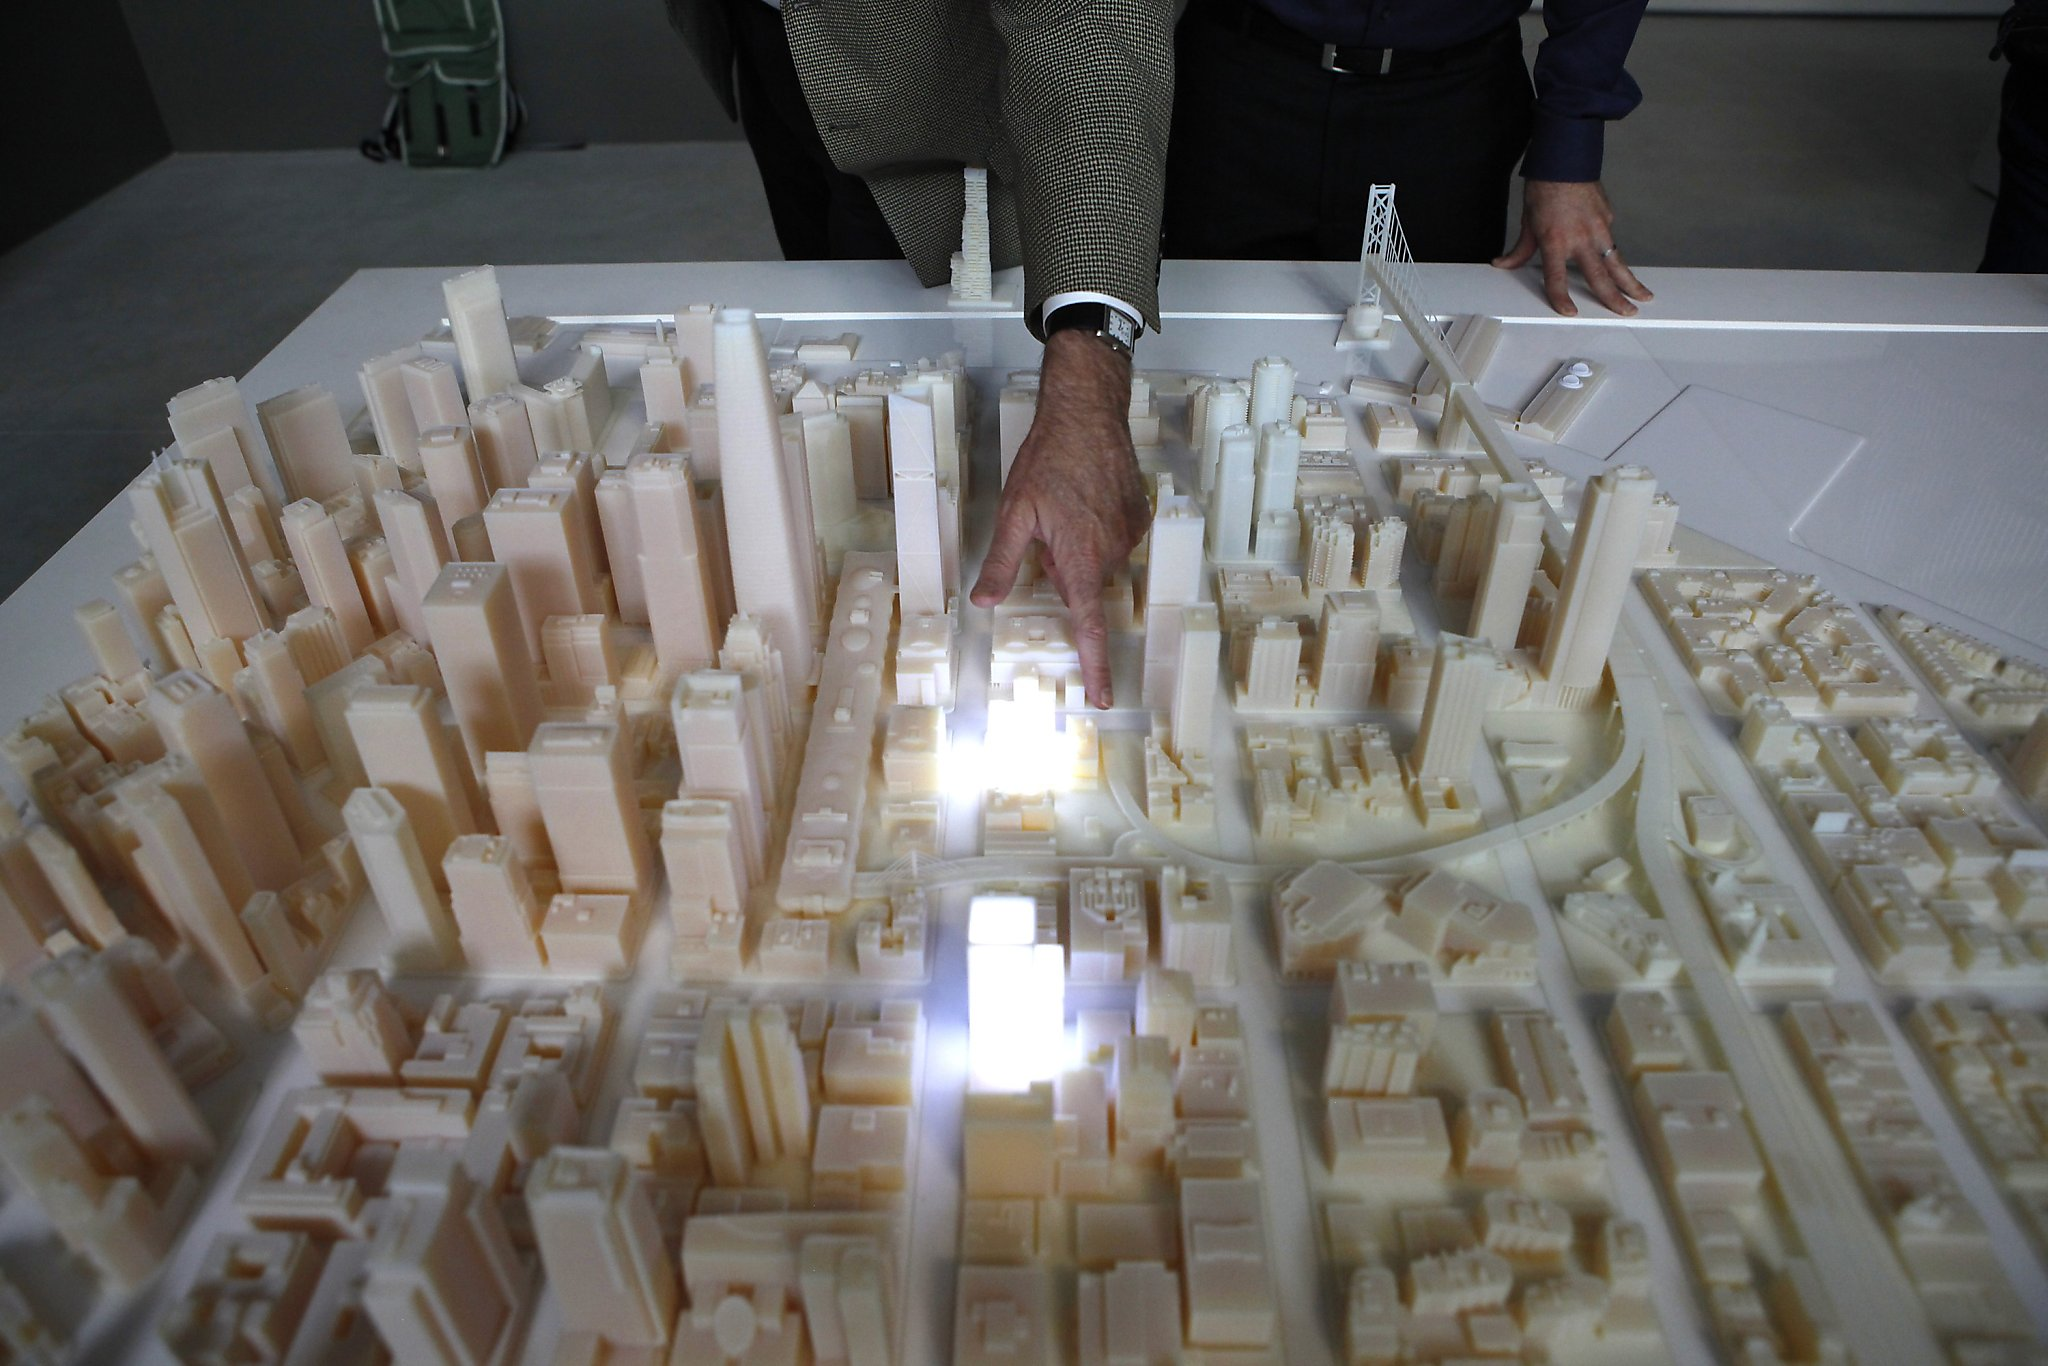 s f skyline of future rises today from 3 d printer sfgates f skyline of future rises today from 3 d printer